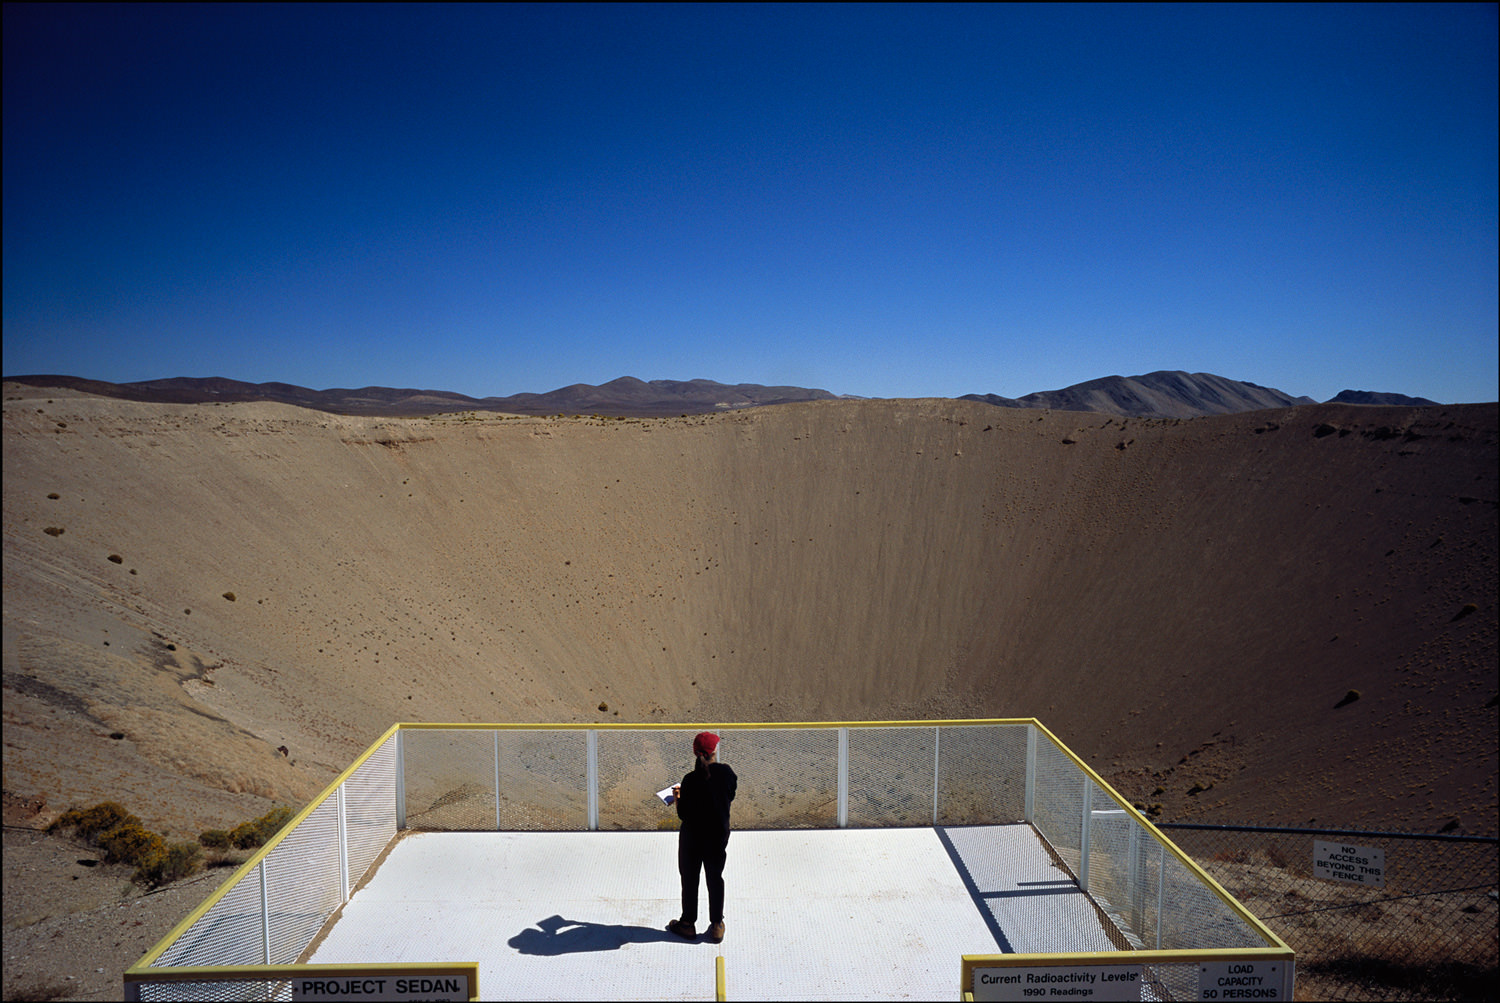 Judith Vollmer, poet and teacher, has come to Sedan Crater on the Nevada Test Site to better understand the loss of her father to radiation related illnesses.